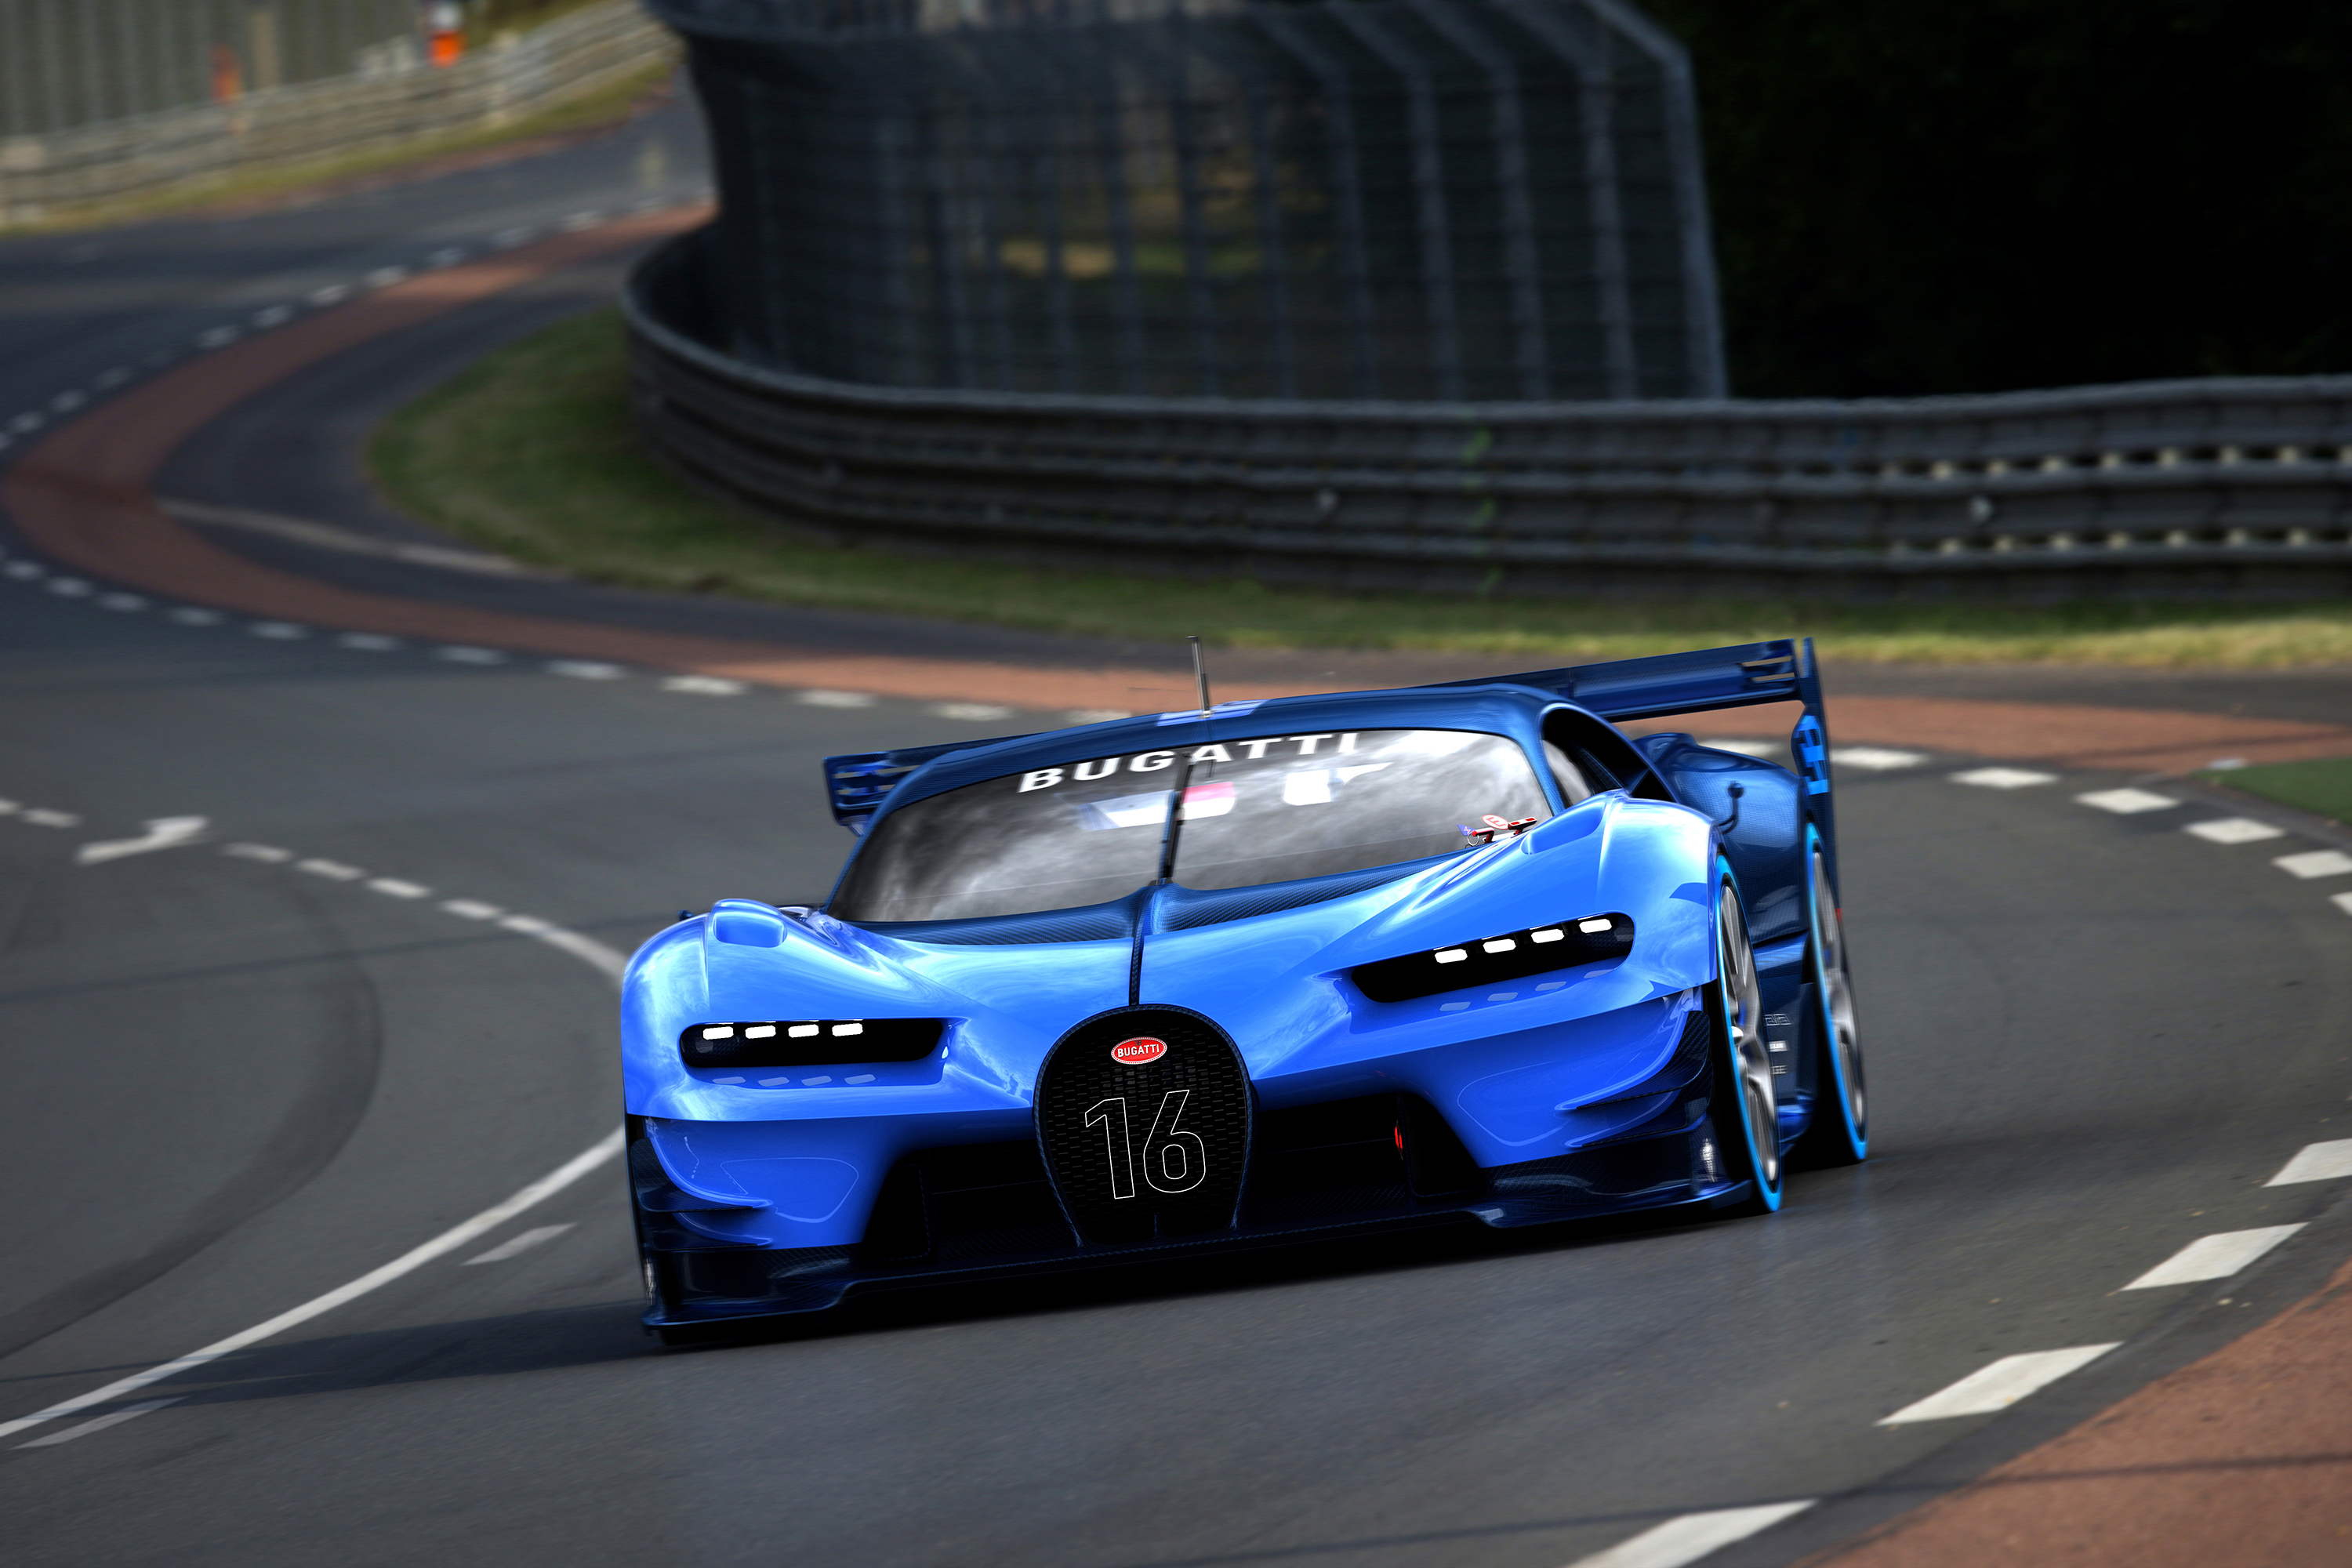 this is the real, live version of bugatti's vision gran turismo